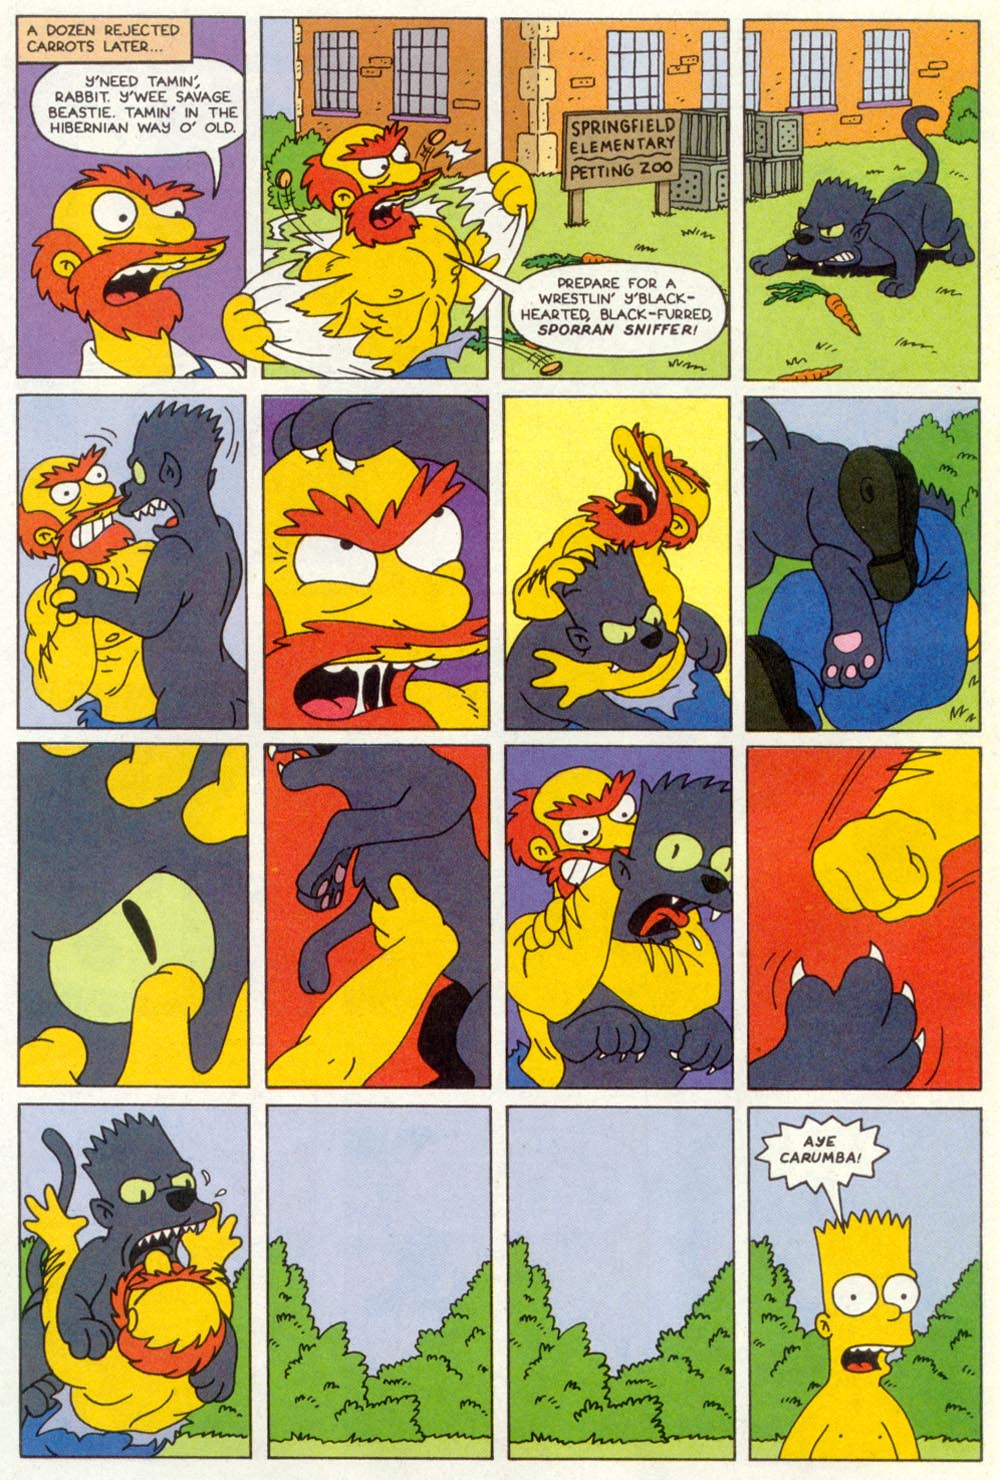 Read online Treehouse of Horror comic -  Issue #1 - 40